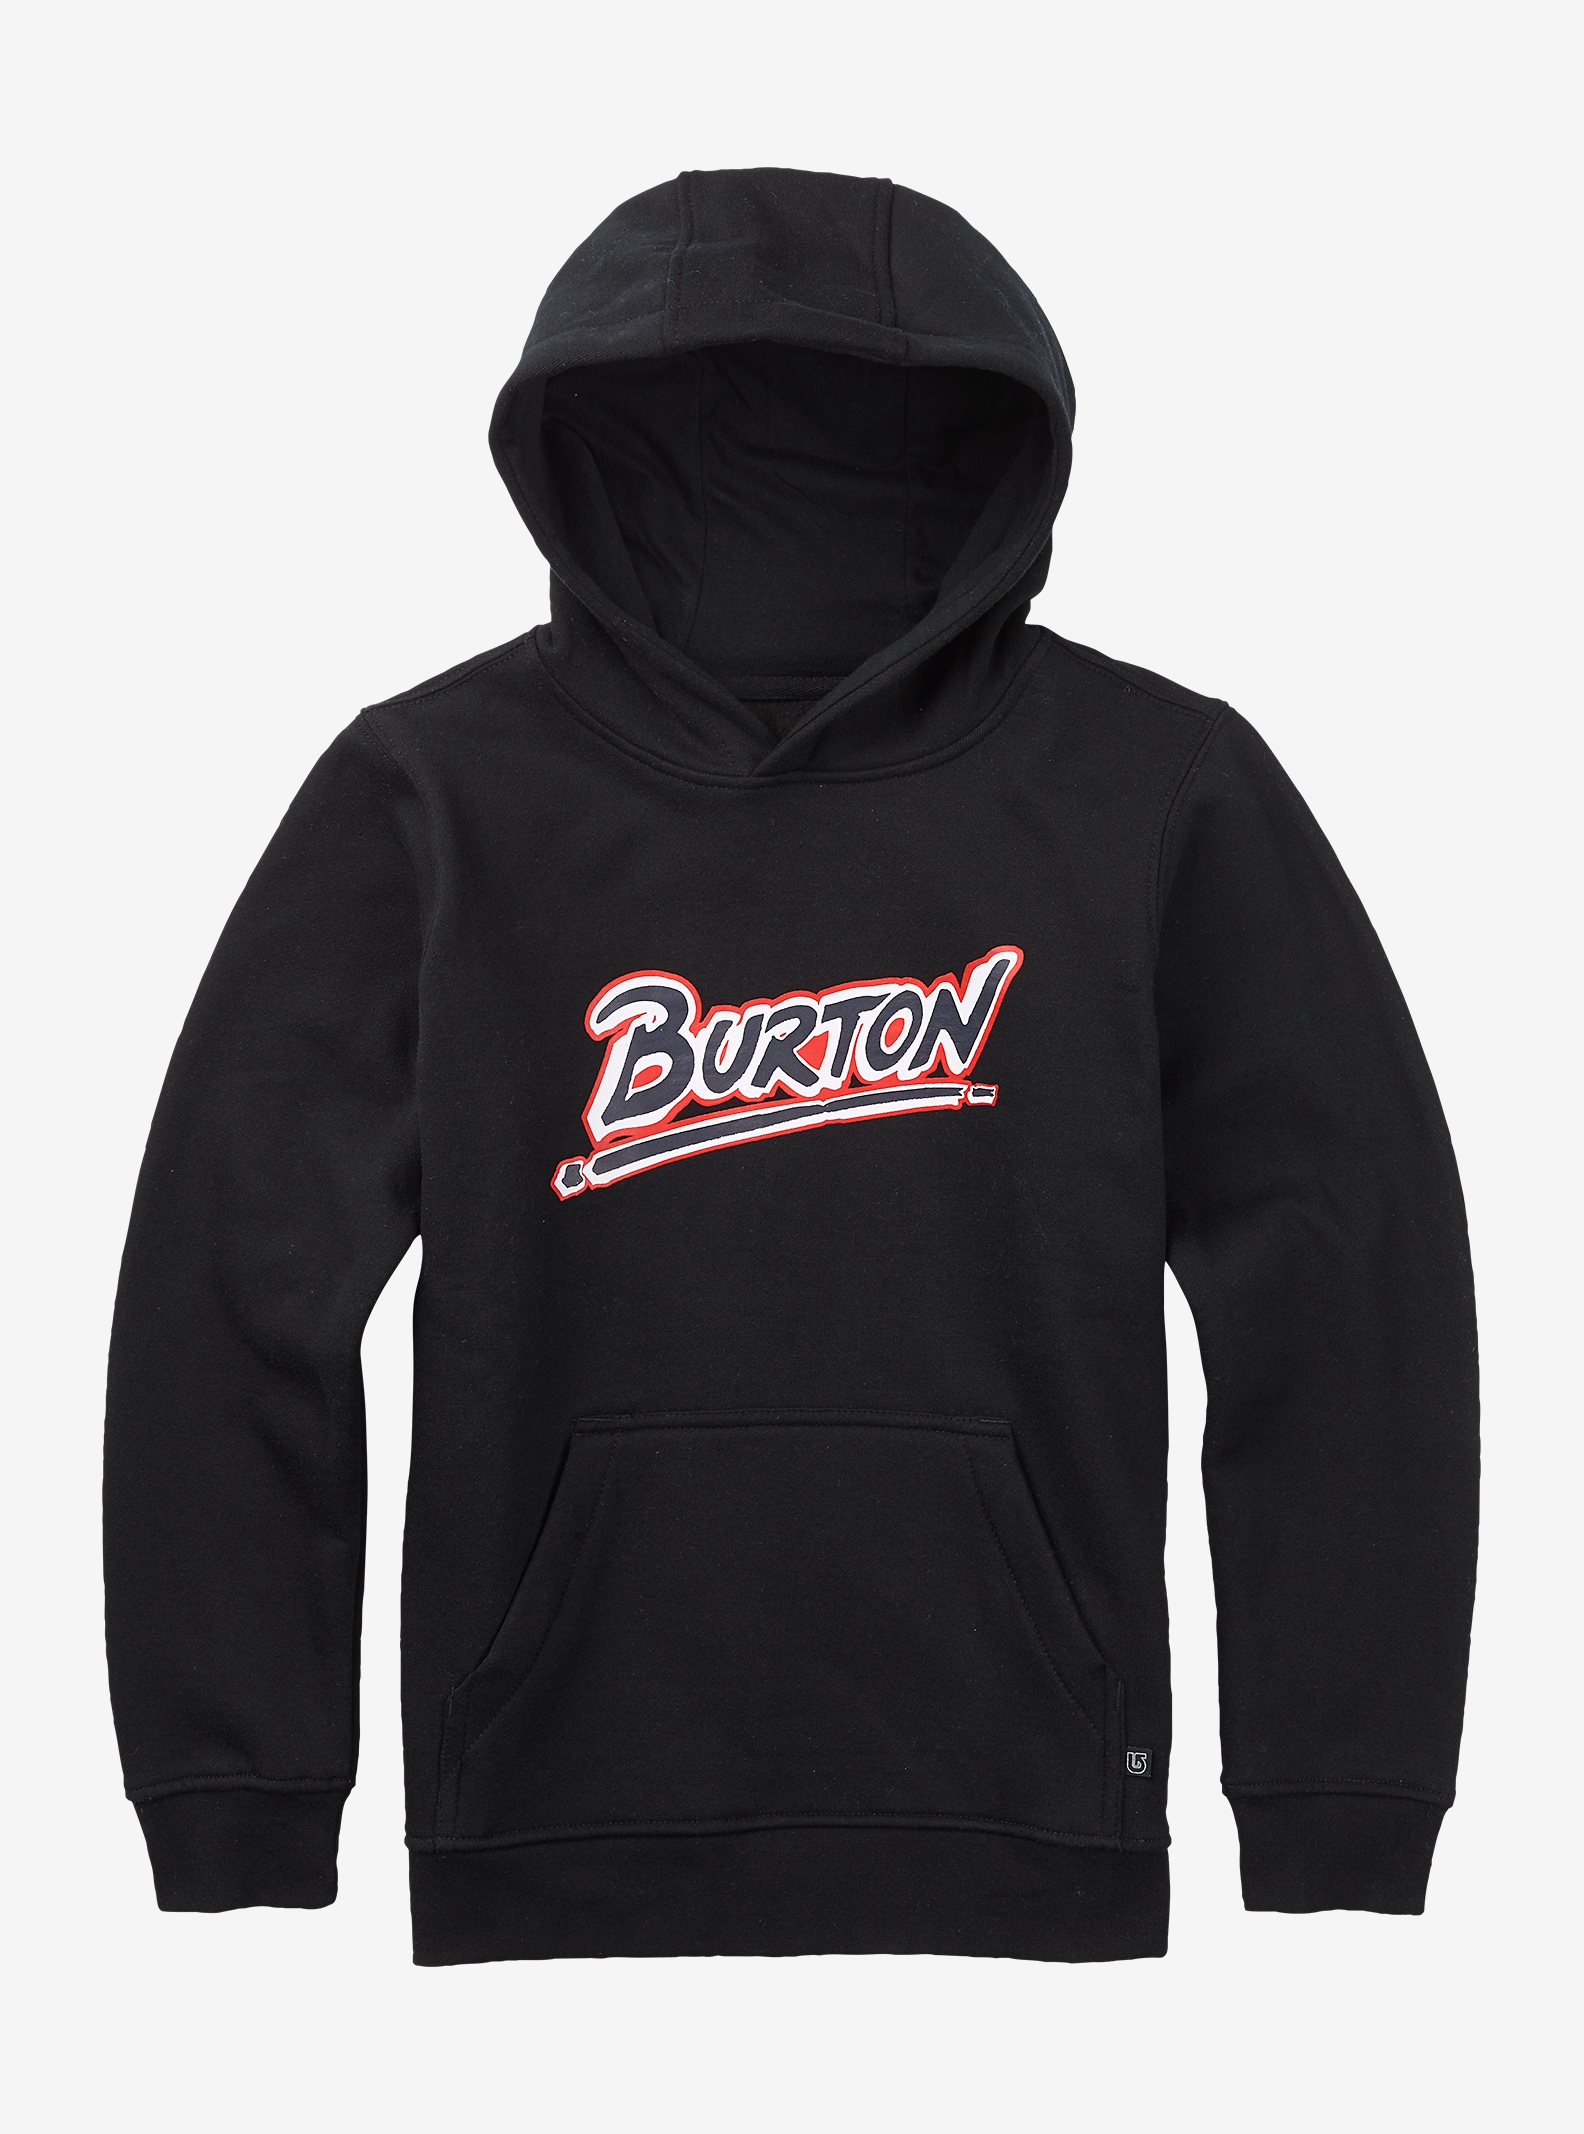 Burton Boys' Big Up Pullover Hoodie shown in True Black